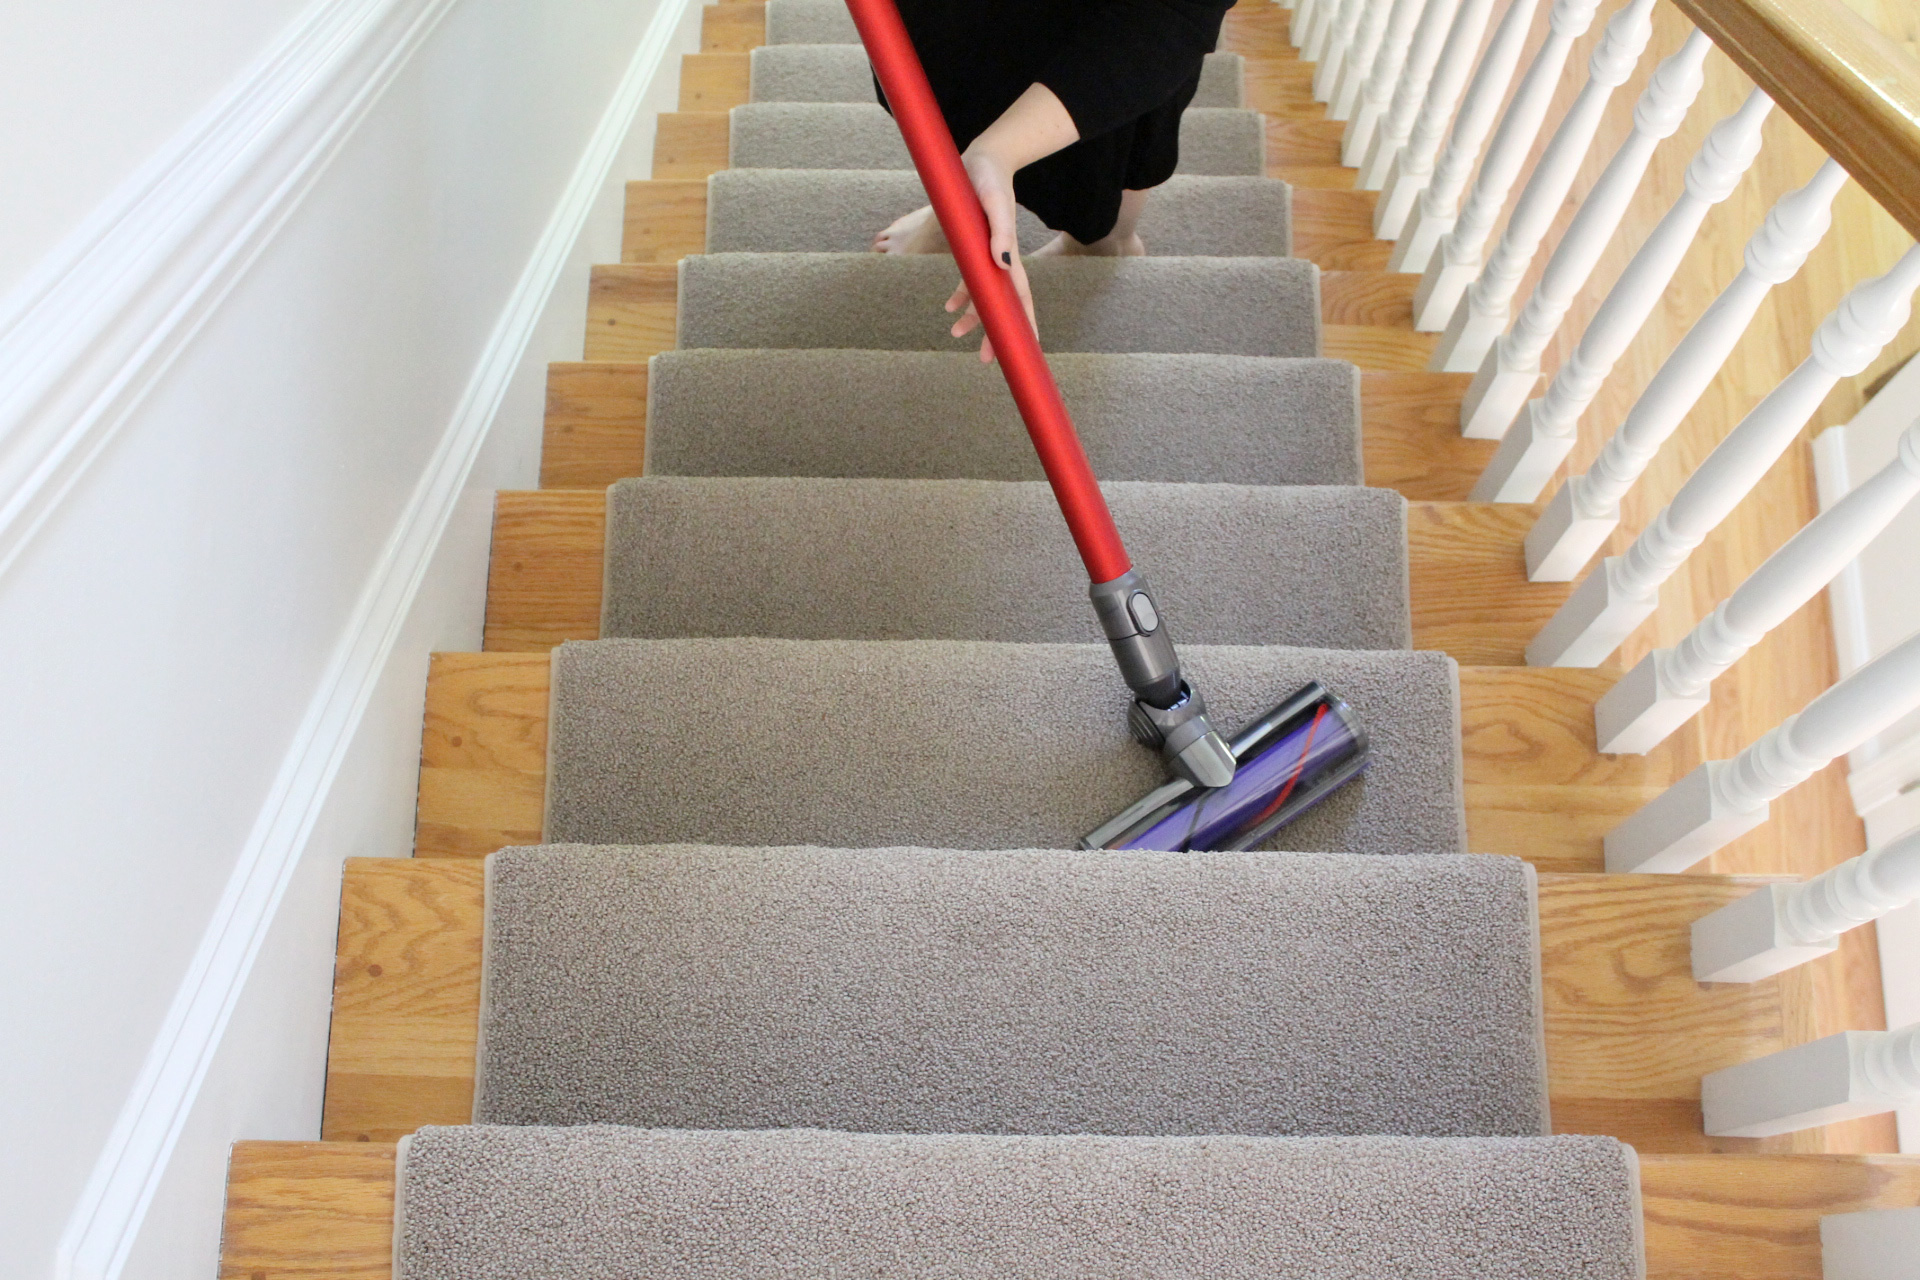 Parenting Must-Have: Dyson V6 AbsoluteCord-Free Vacuum